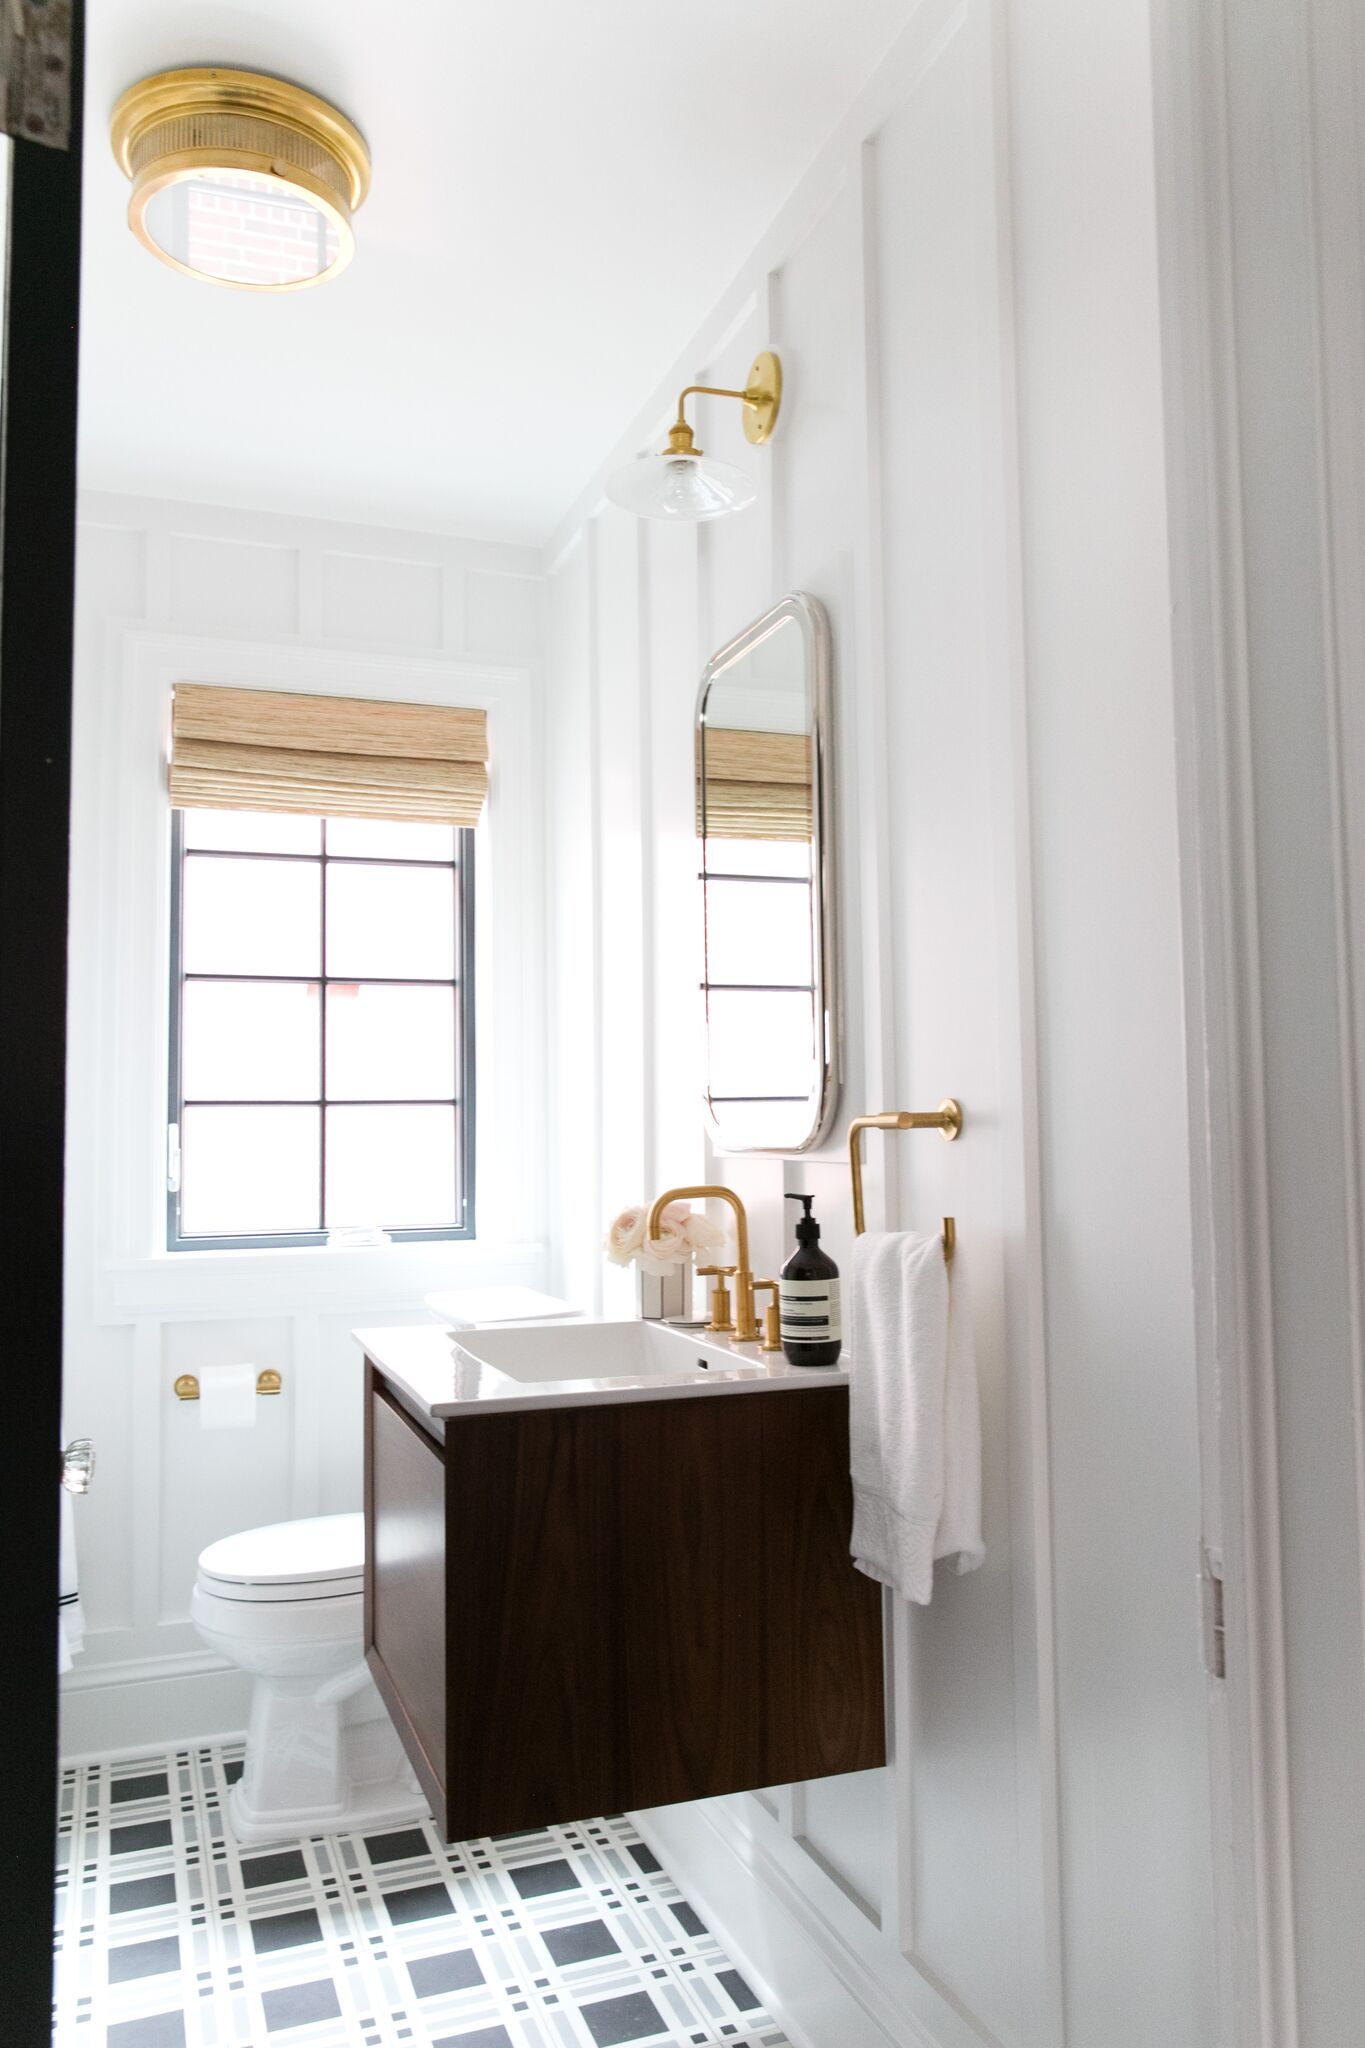 Guest bathroom with modern features